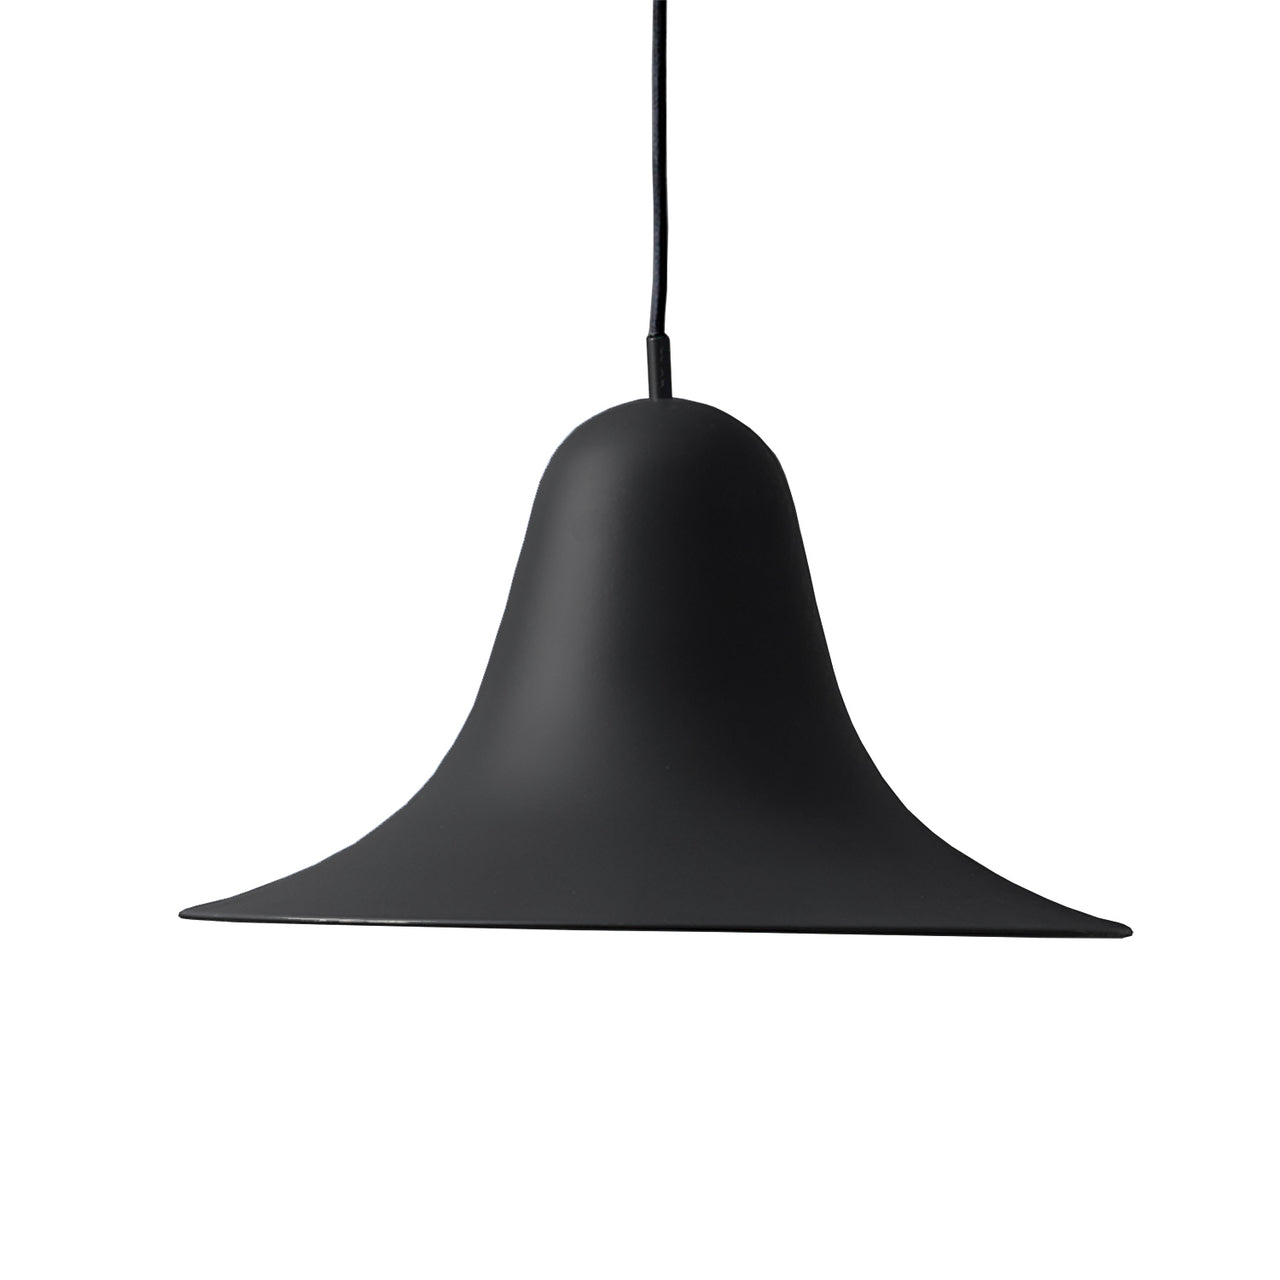 Pantop Pendant Light: Large